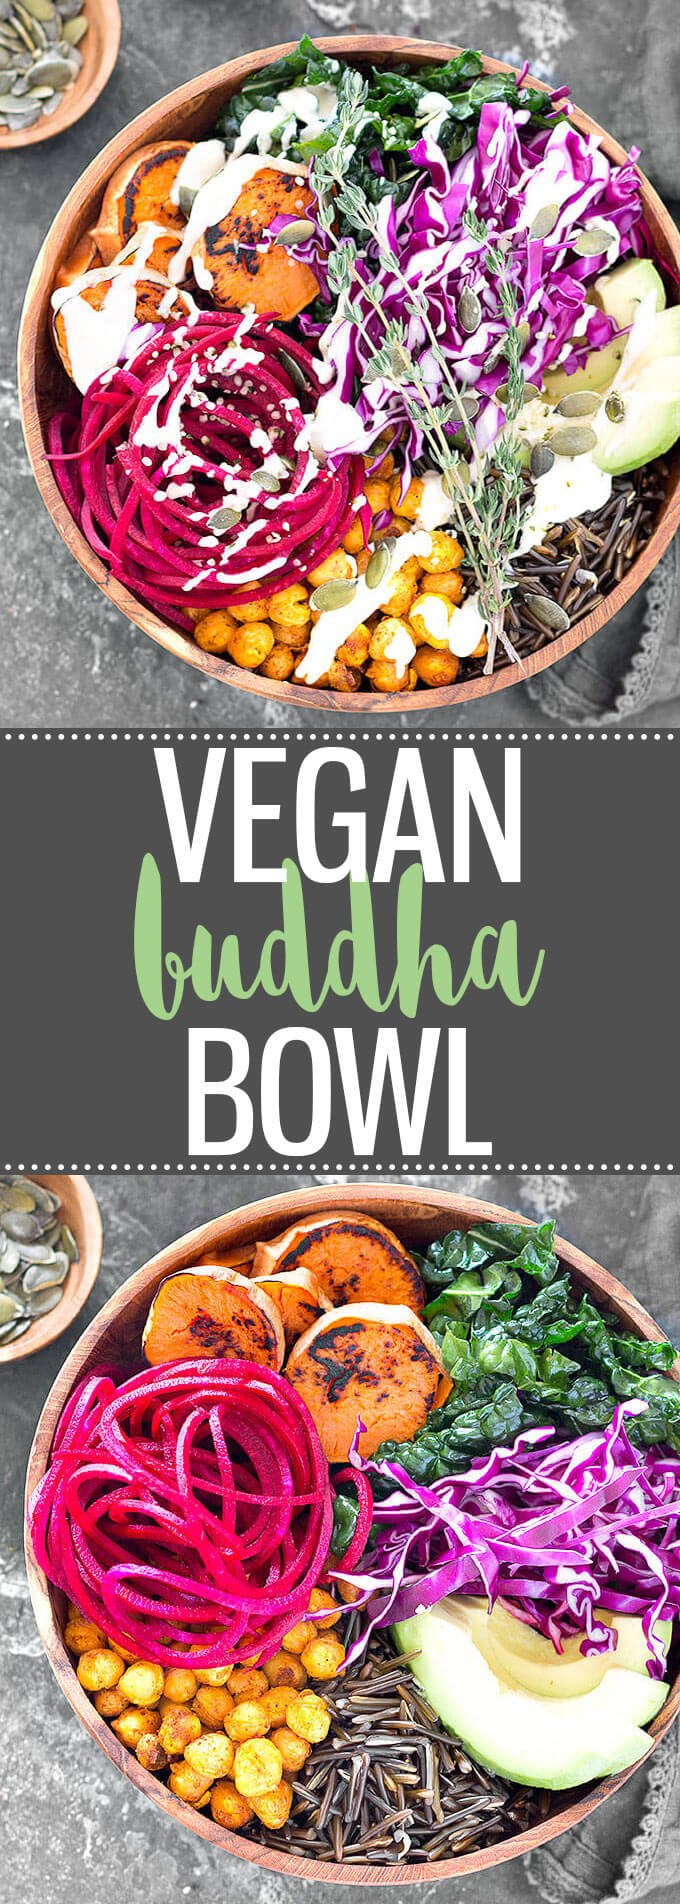 Vegan Buddha Bowl with Lemon Tahini Dressing - This power bowl is absolutely delicious! Super easy to make, packed with flavor, nourishing, and healthy. #buddhabowl #bowl #powerbowl #vegan #healthyrecipes #healthyeating #dressing #tahini | aseasyasapplepie.com